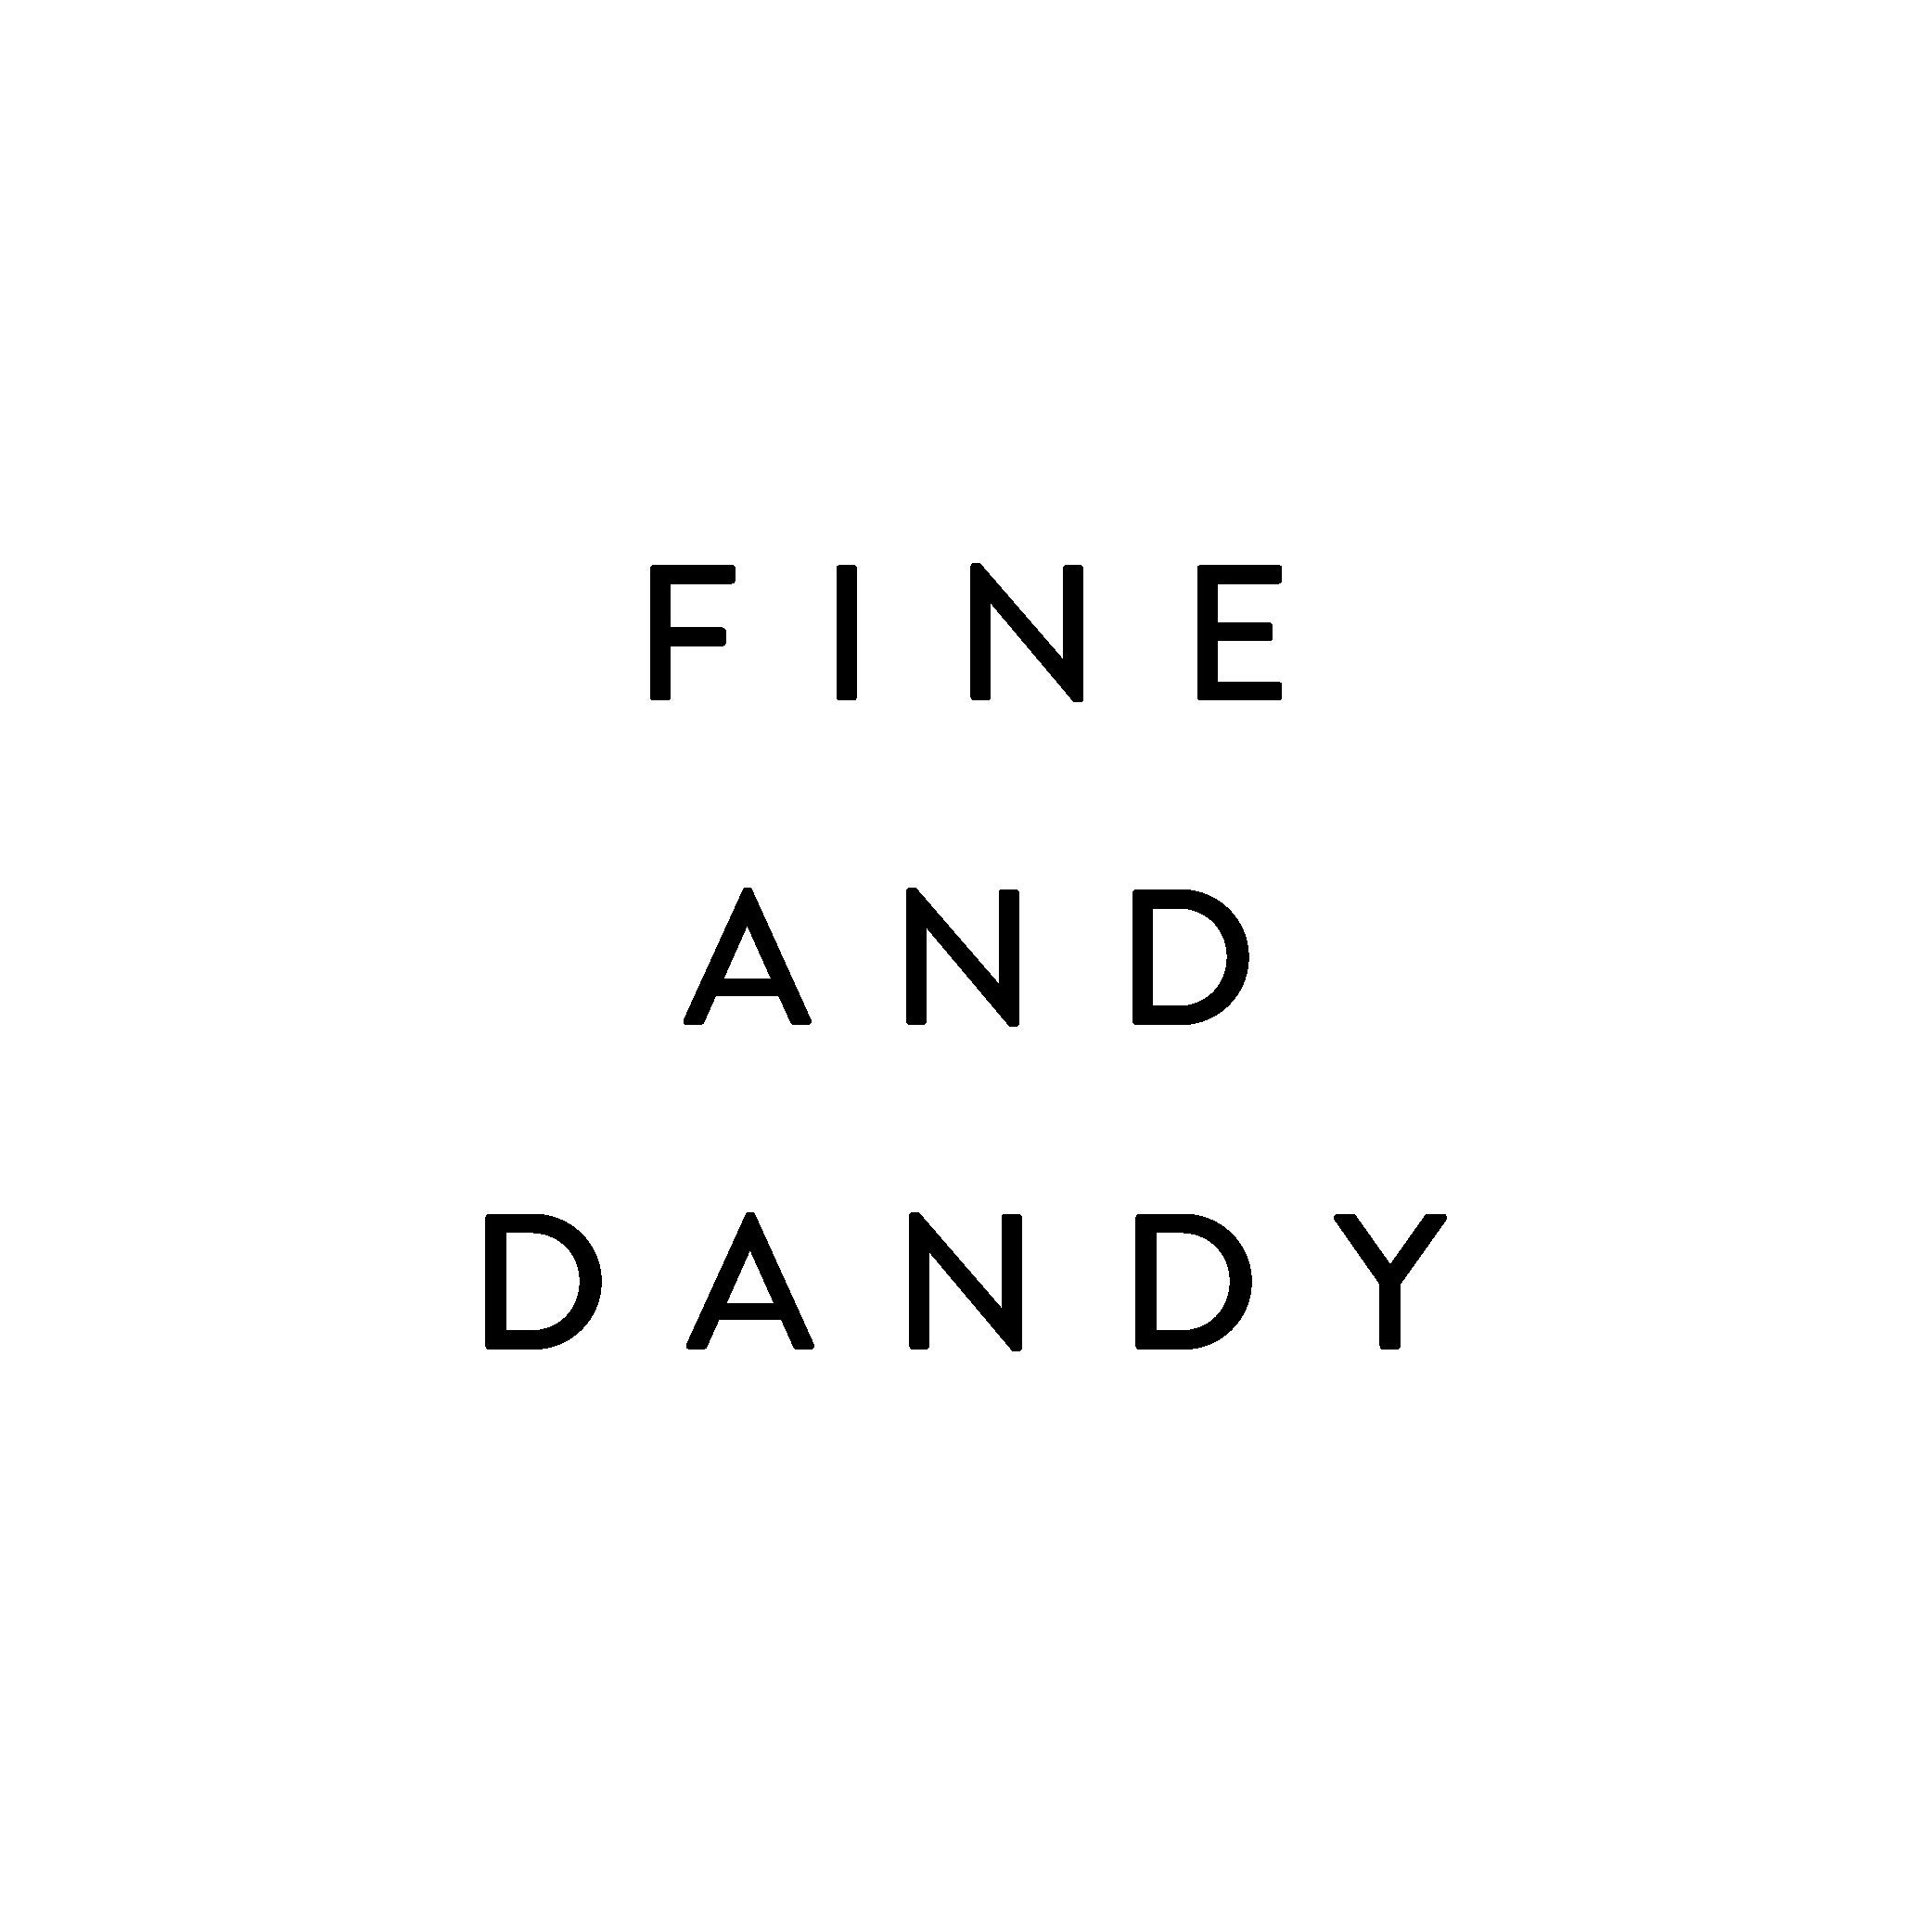 fineanddandypaperie